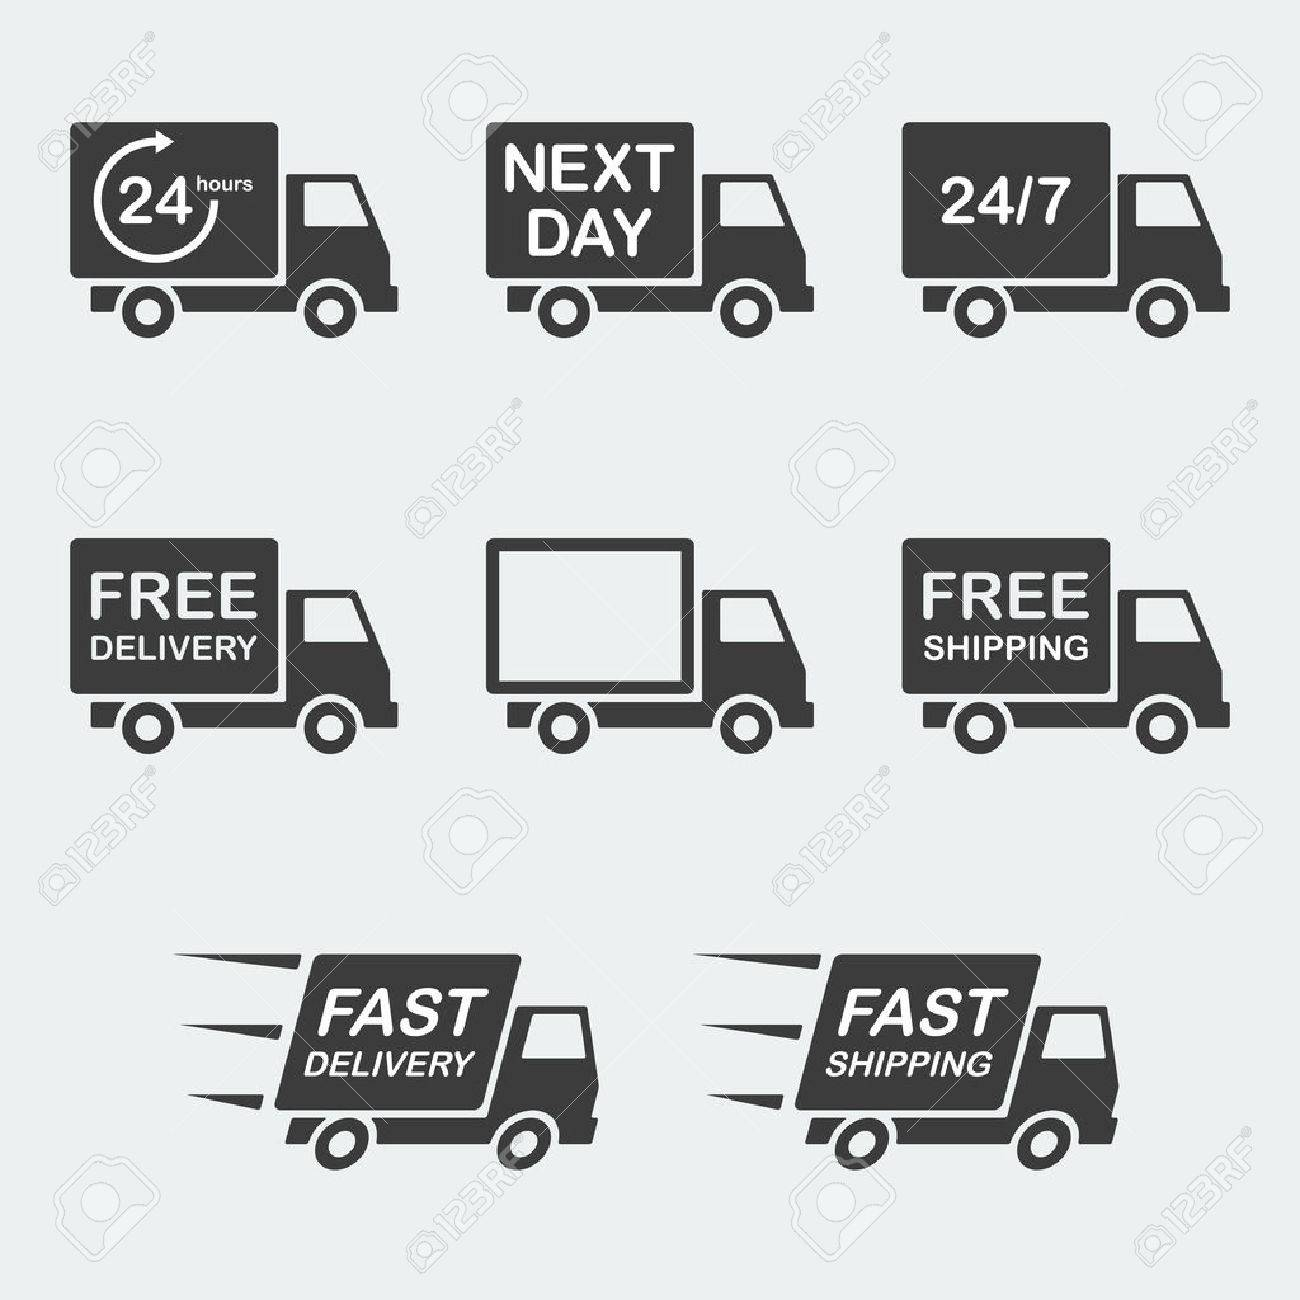 delivery icon set. next day delivery, free delivery and fast delivery, free shipping and fast shipping, 247 and 24 hour delivery. vector illustration - 49215549